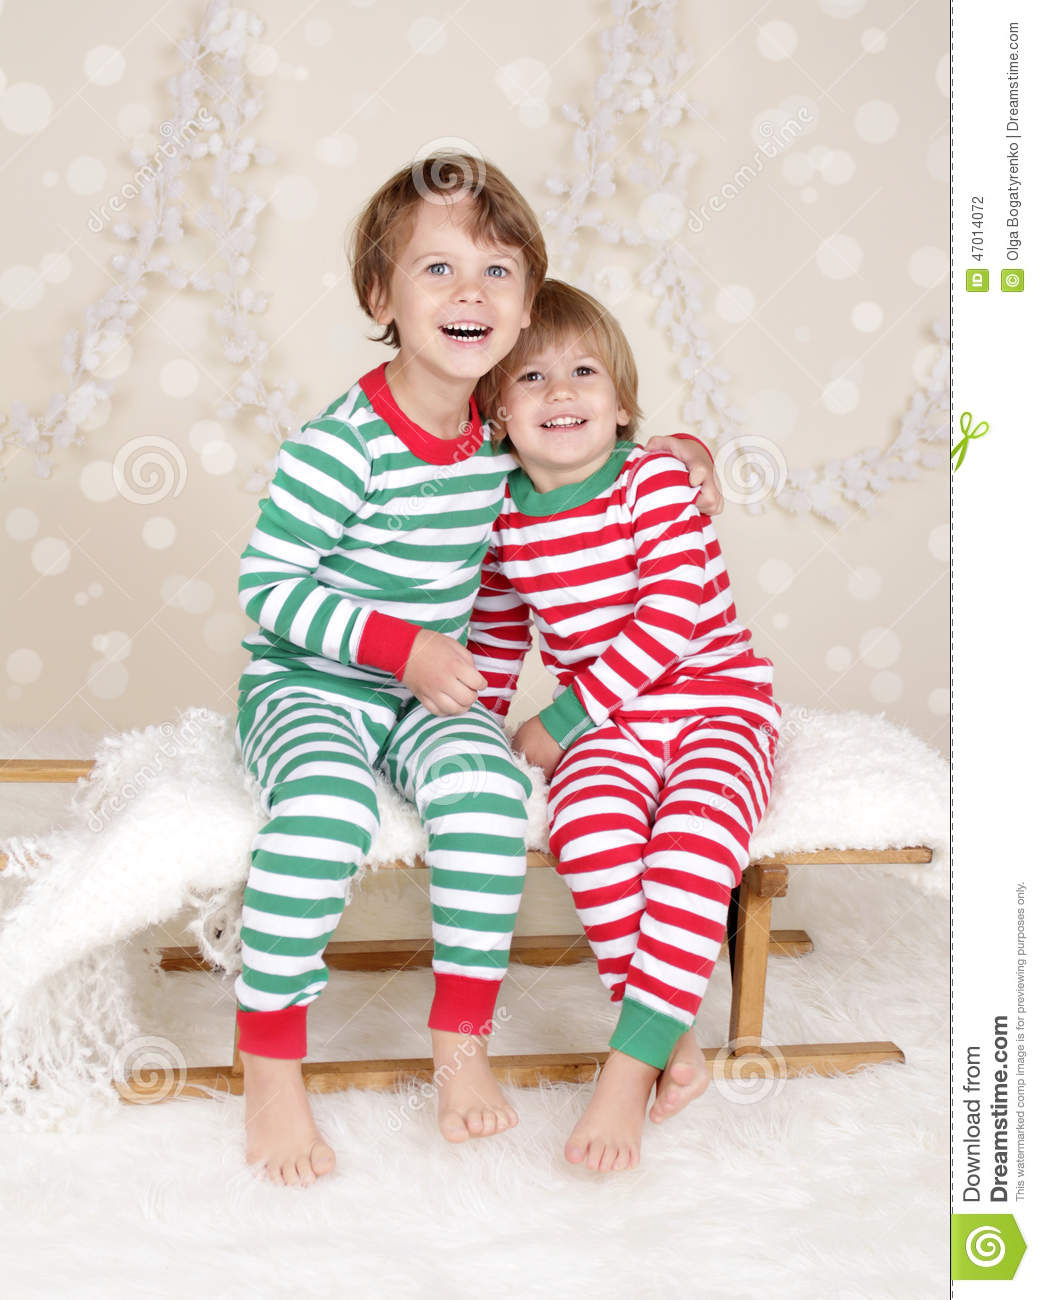 25b5aca1ea Winter Holidays  Laughing Happy Kids In Christmas Pajamas Sled I ...